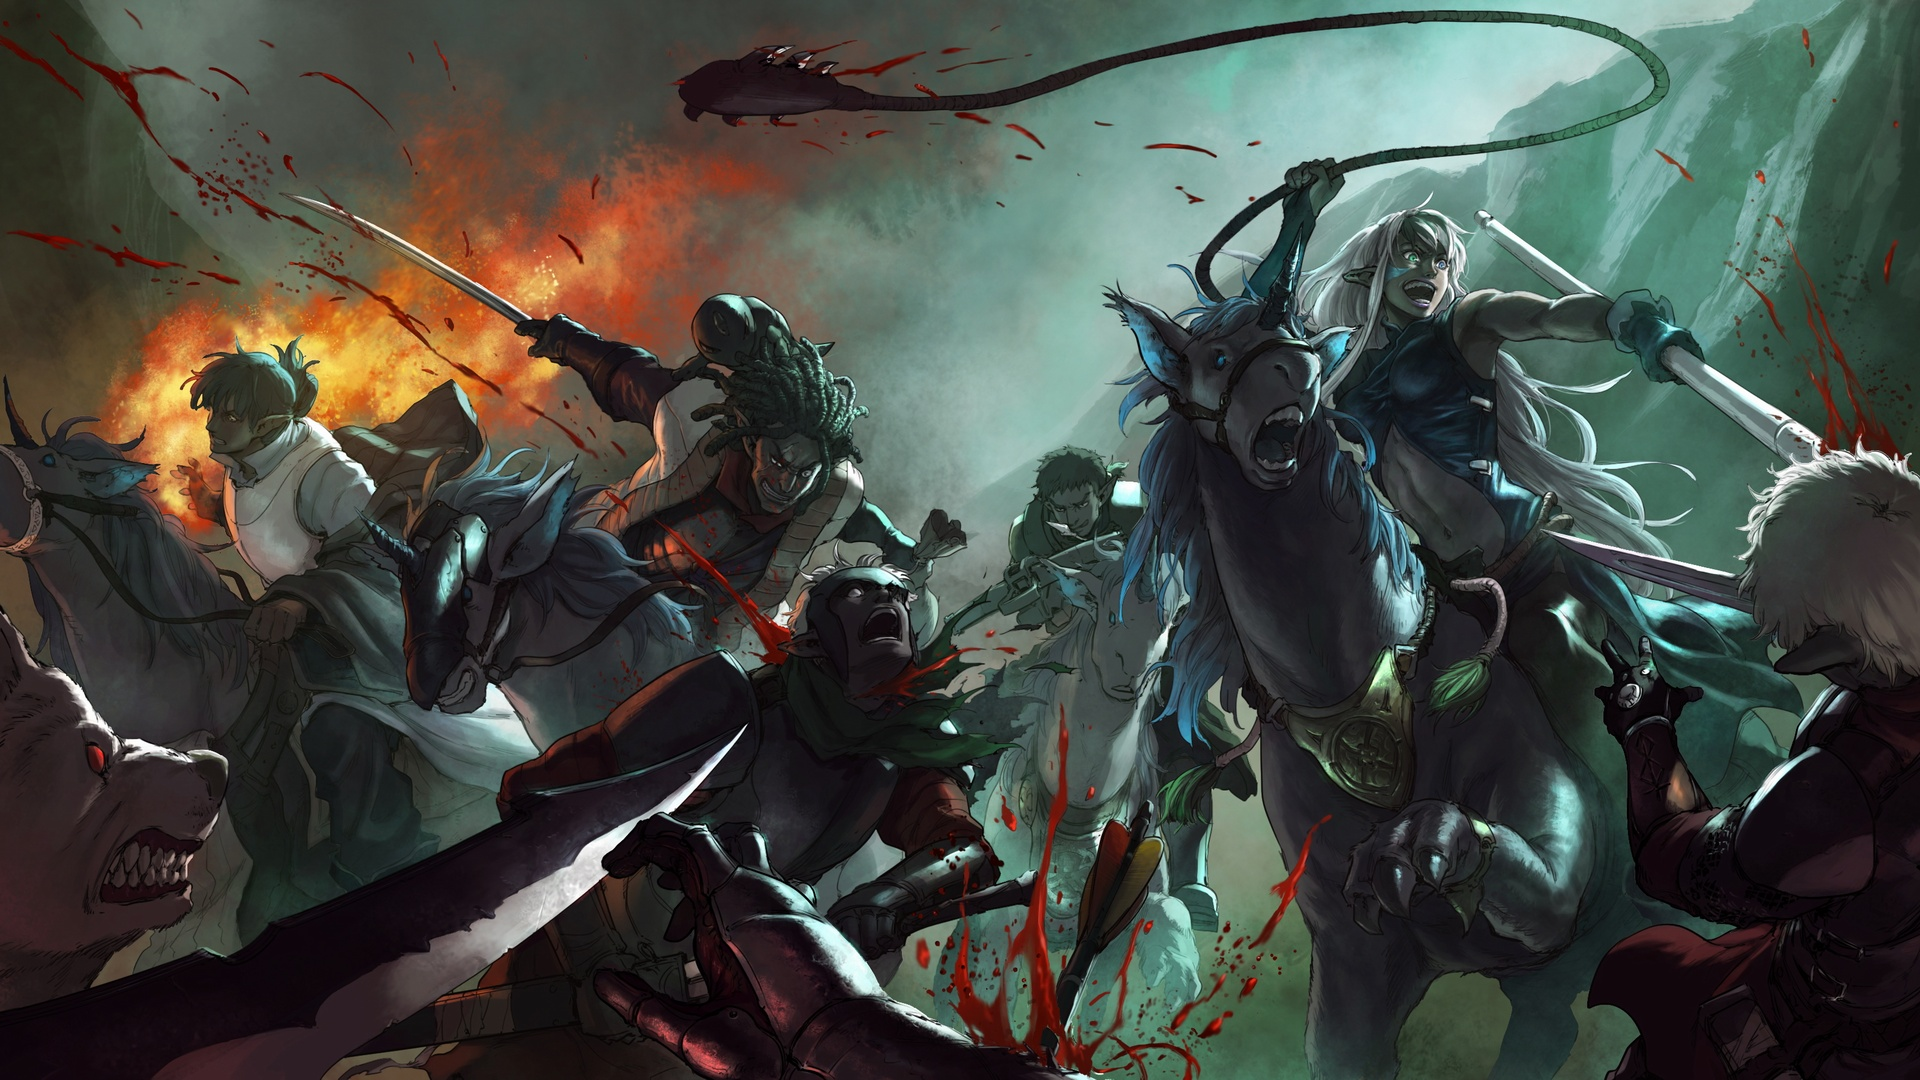 Epic Battle Wallpaper Epic battle drawn by koong for 1920x1080